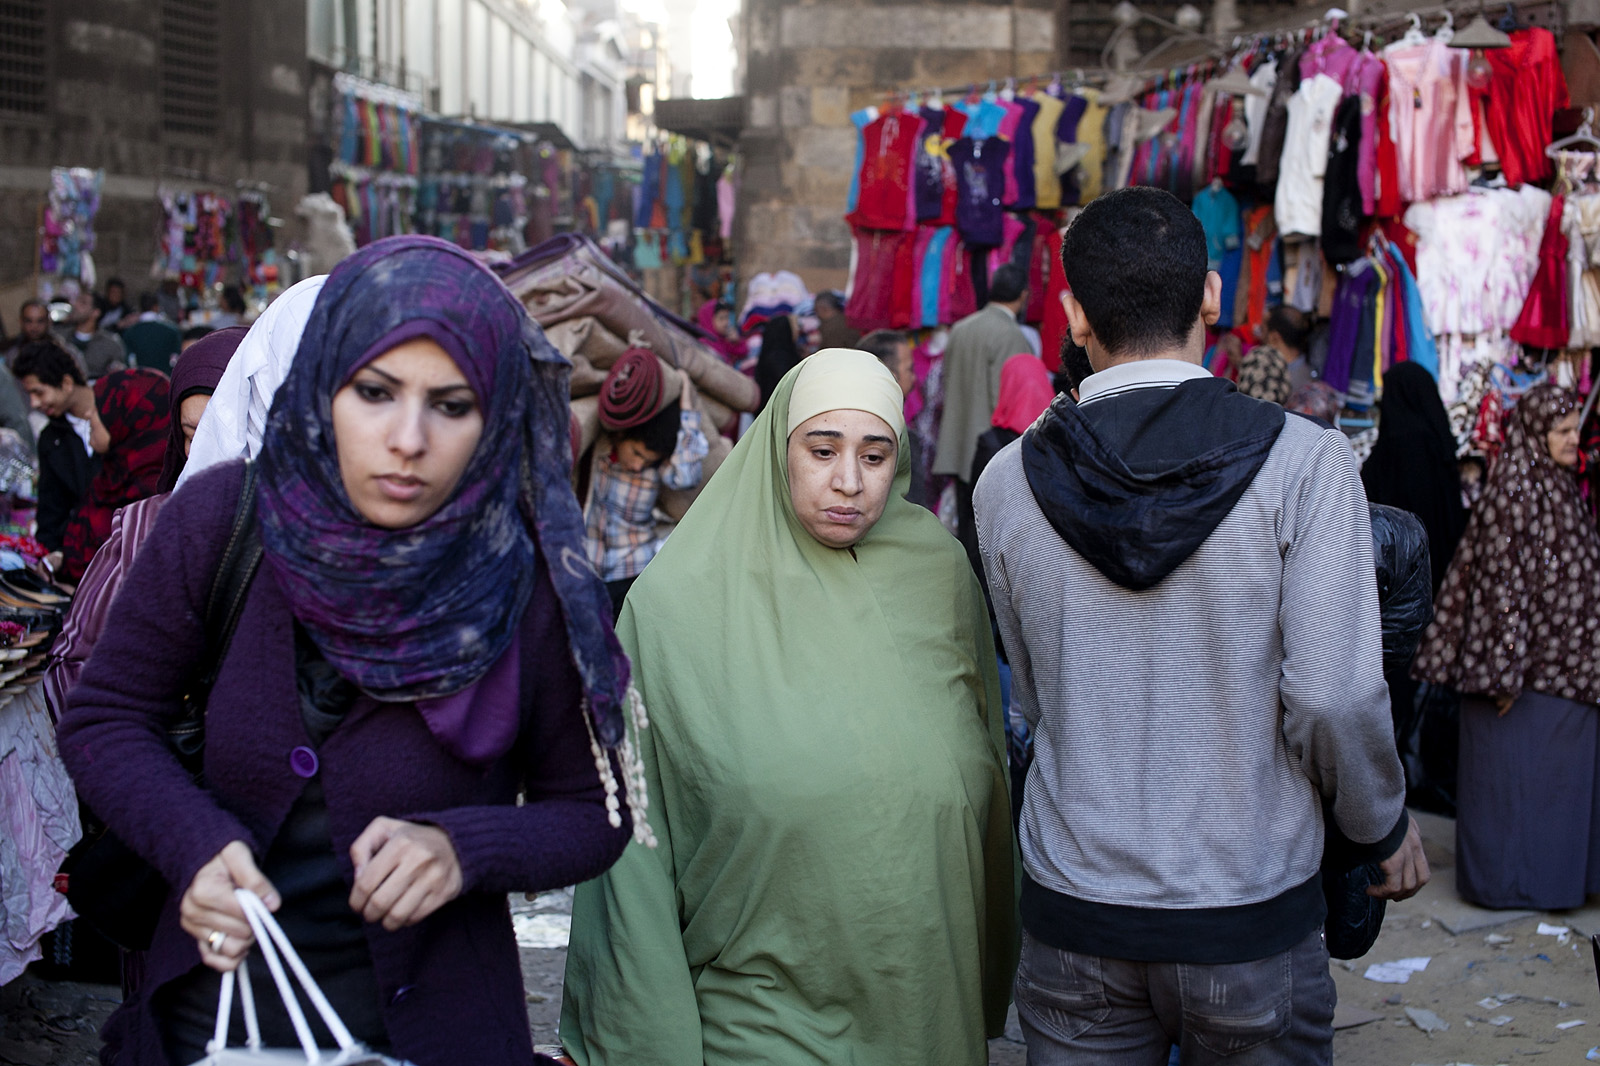 At the markets in Cairo's Muslim quarter.